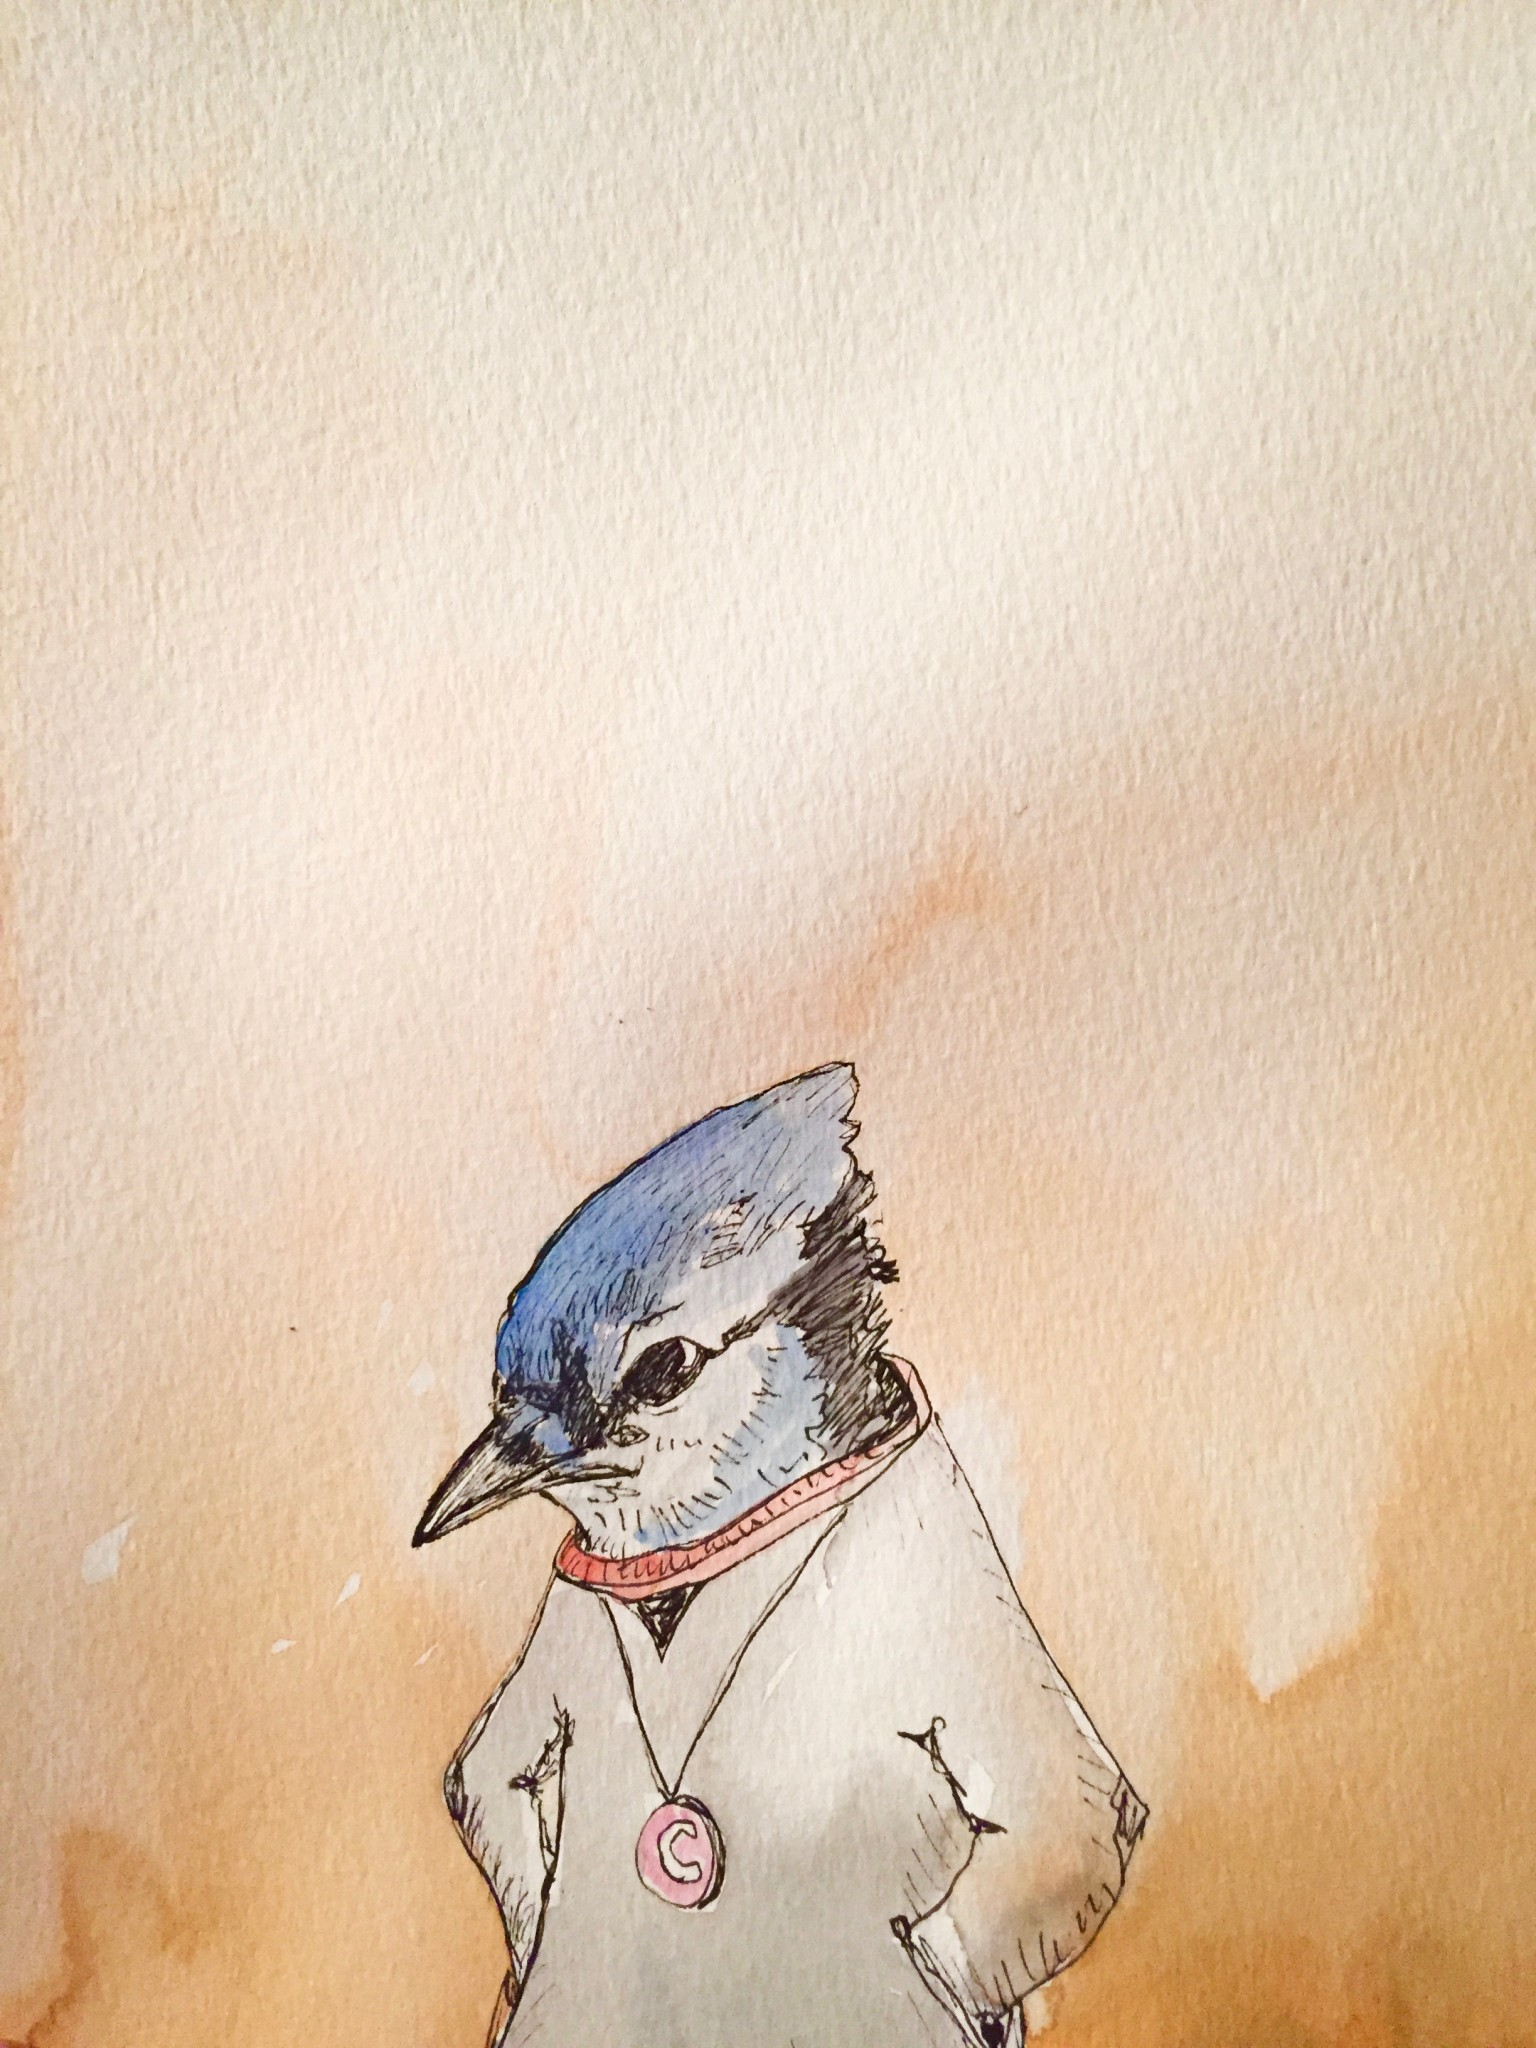 Bewabon Blue Jay Caricature C - IF ONLY I'D RECEIVE ART FOR CHRISTMAS IV